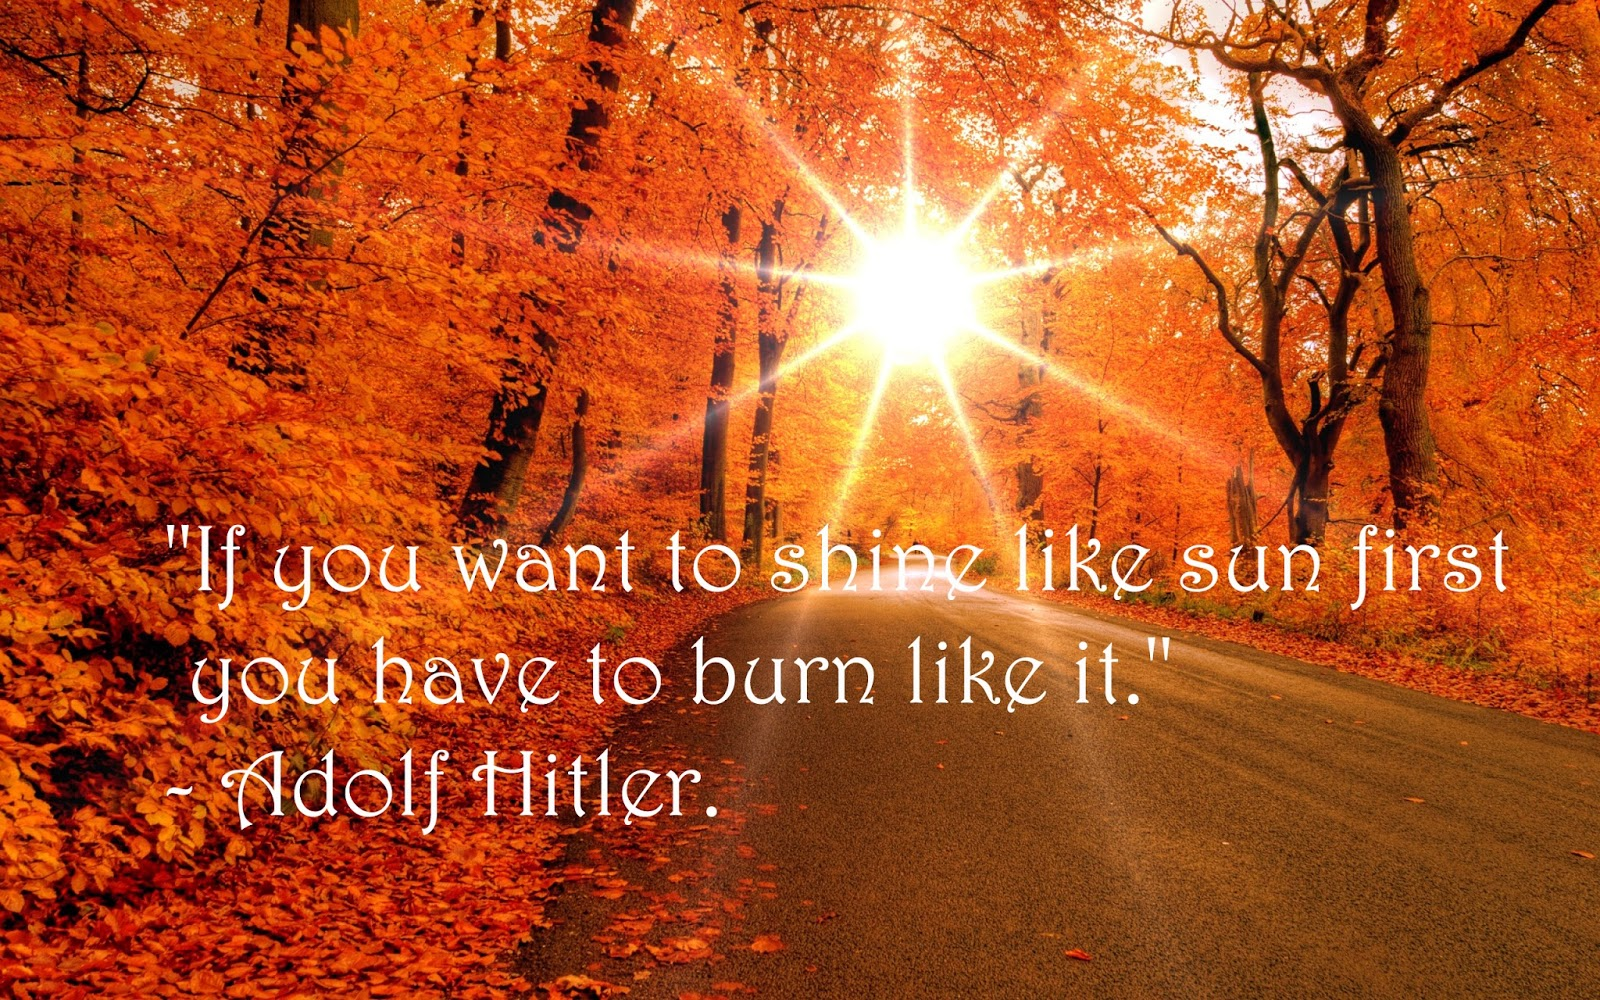 If you want to shine like sun first you have to burn like it